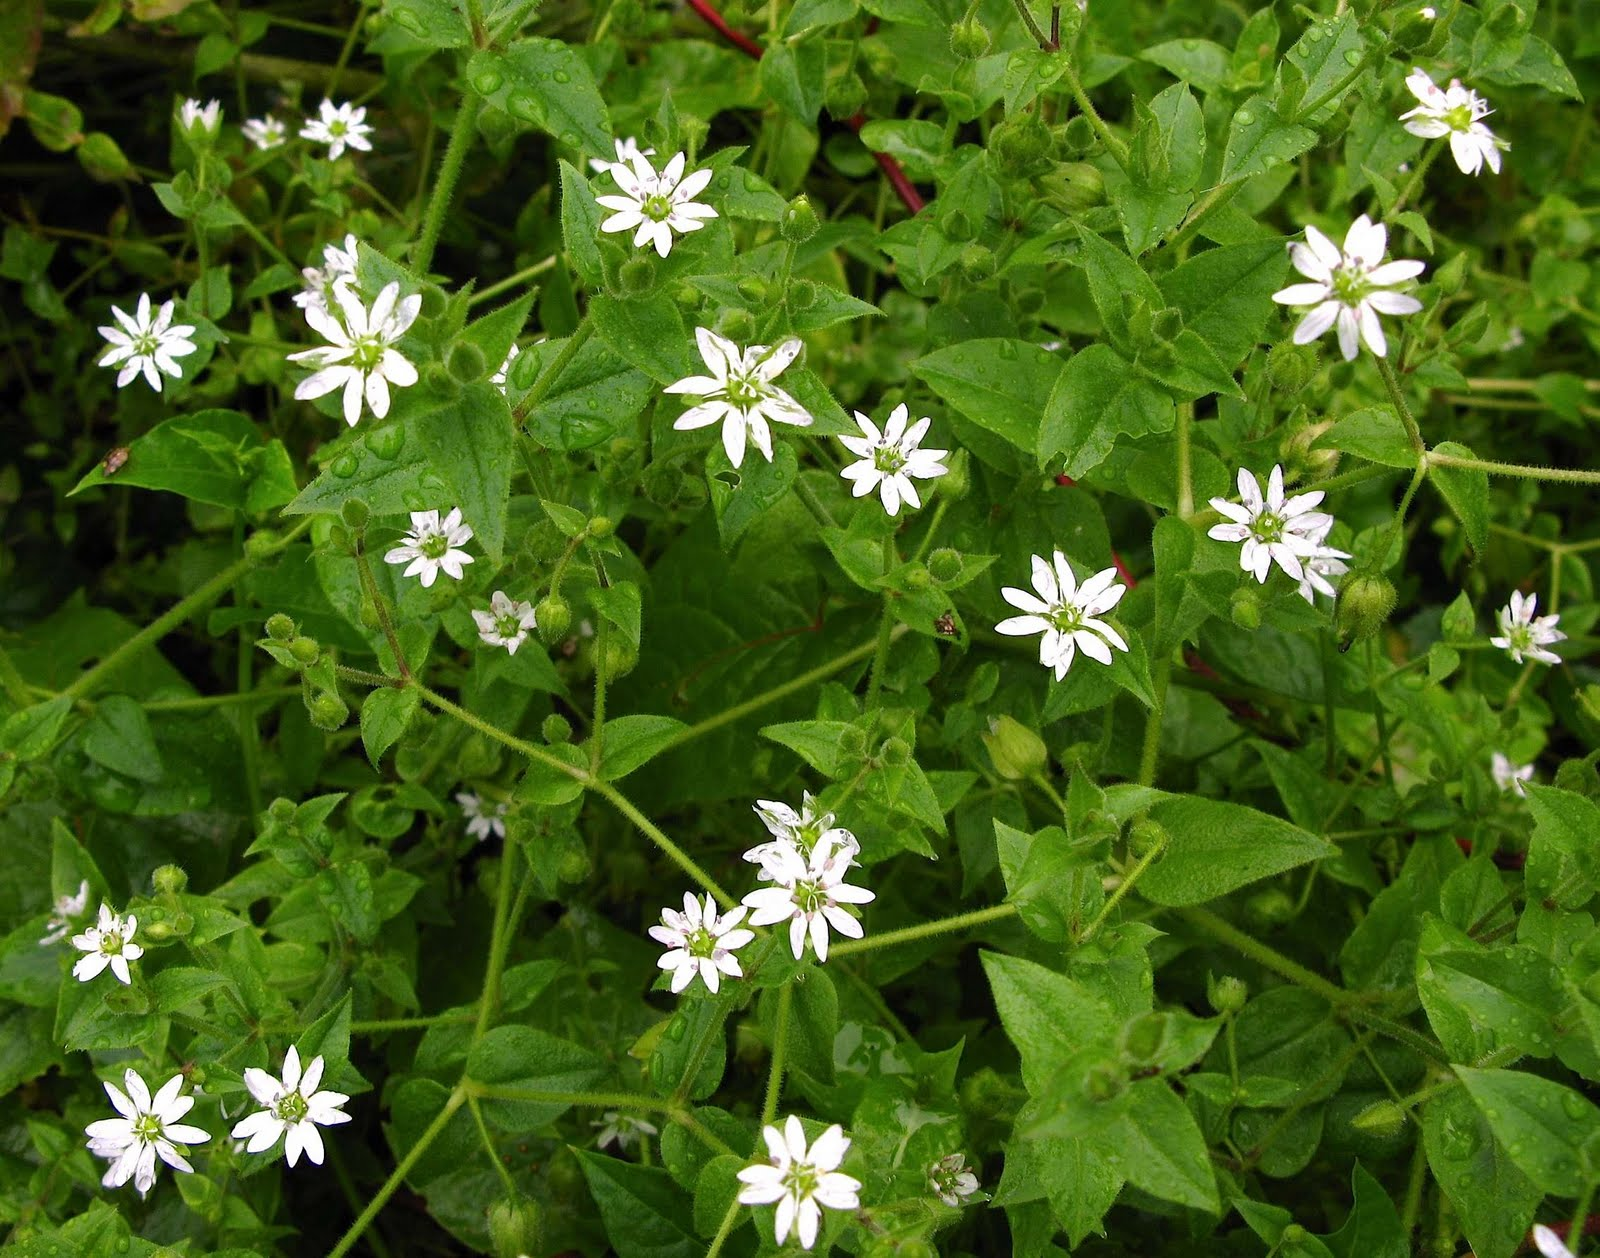 Weed of the Week - Common Chickweed - Featured Image